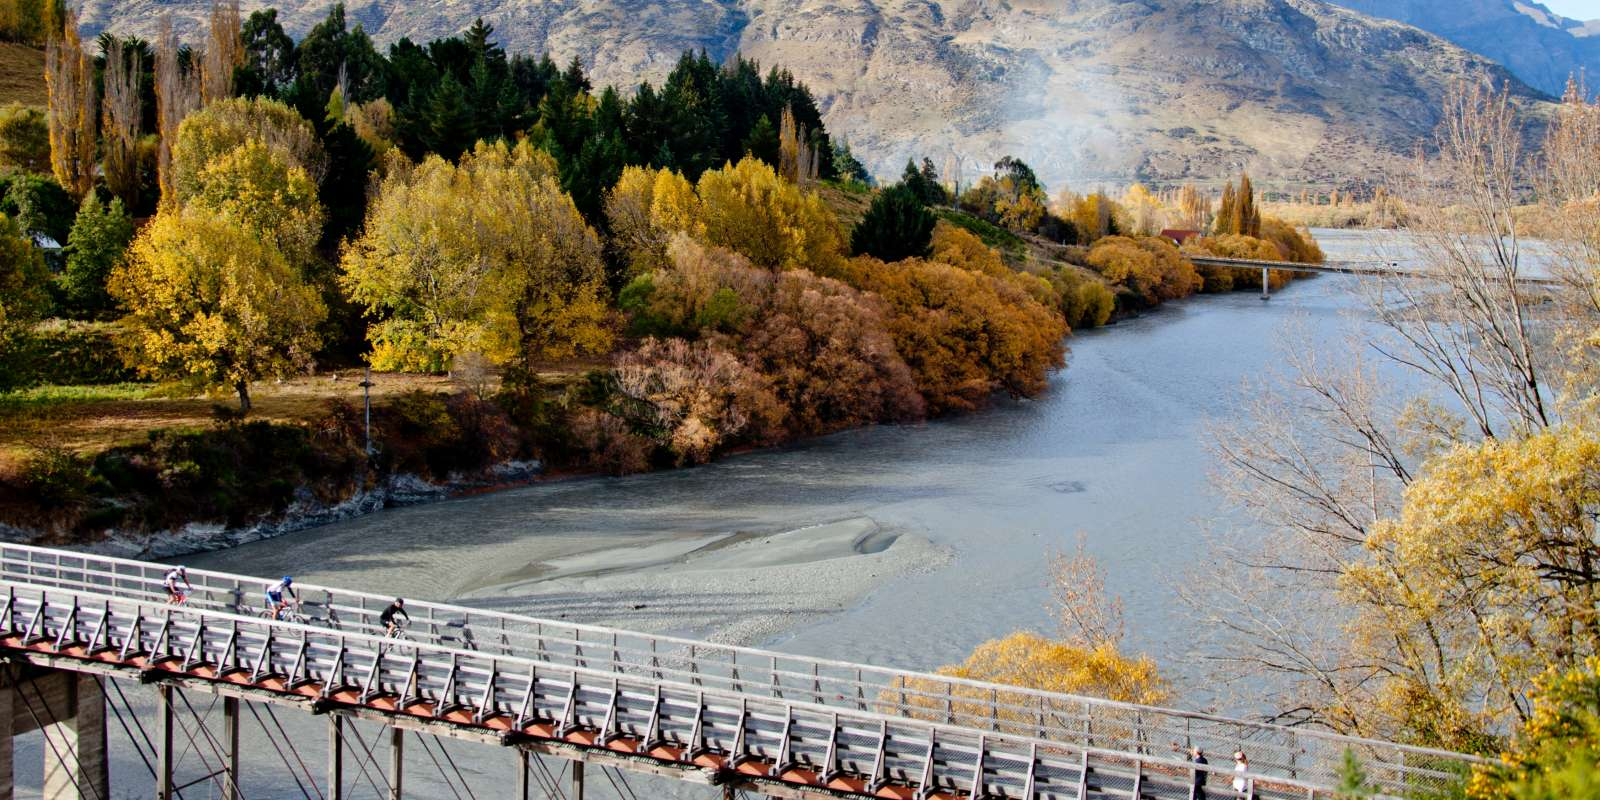 ebiking in queenstown going over the old shotover bridge riding from queenstown to arrowtown